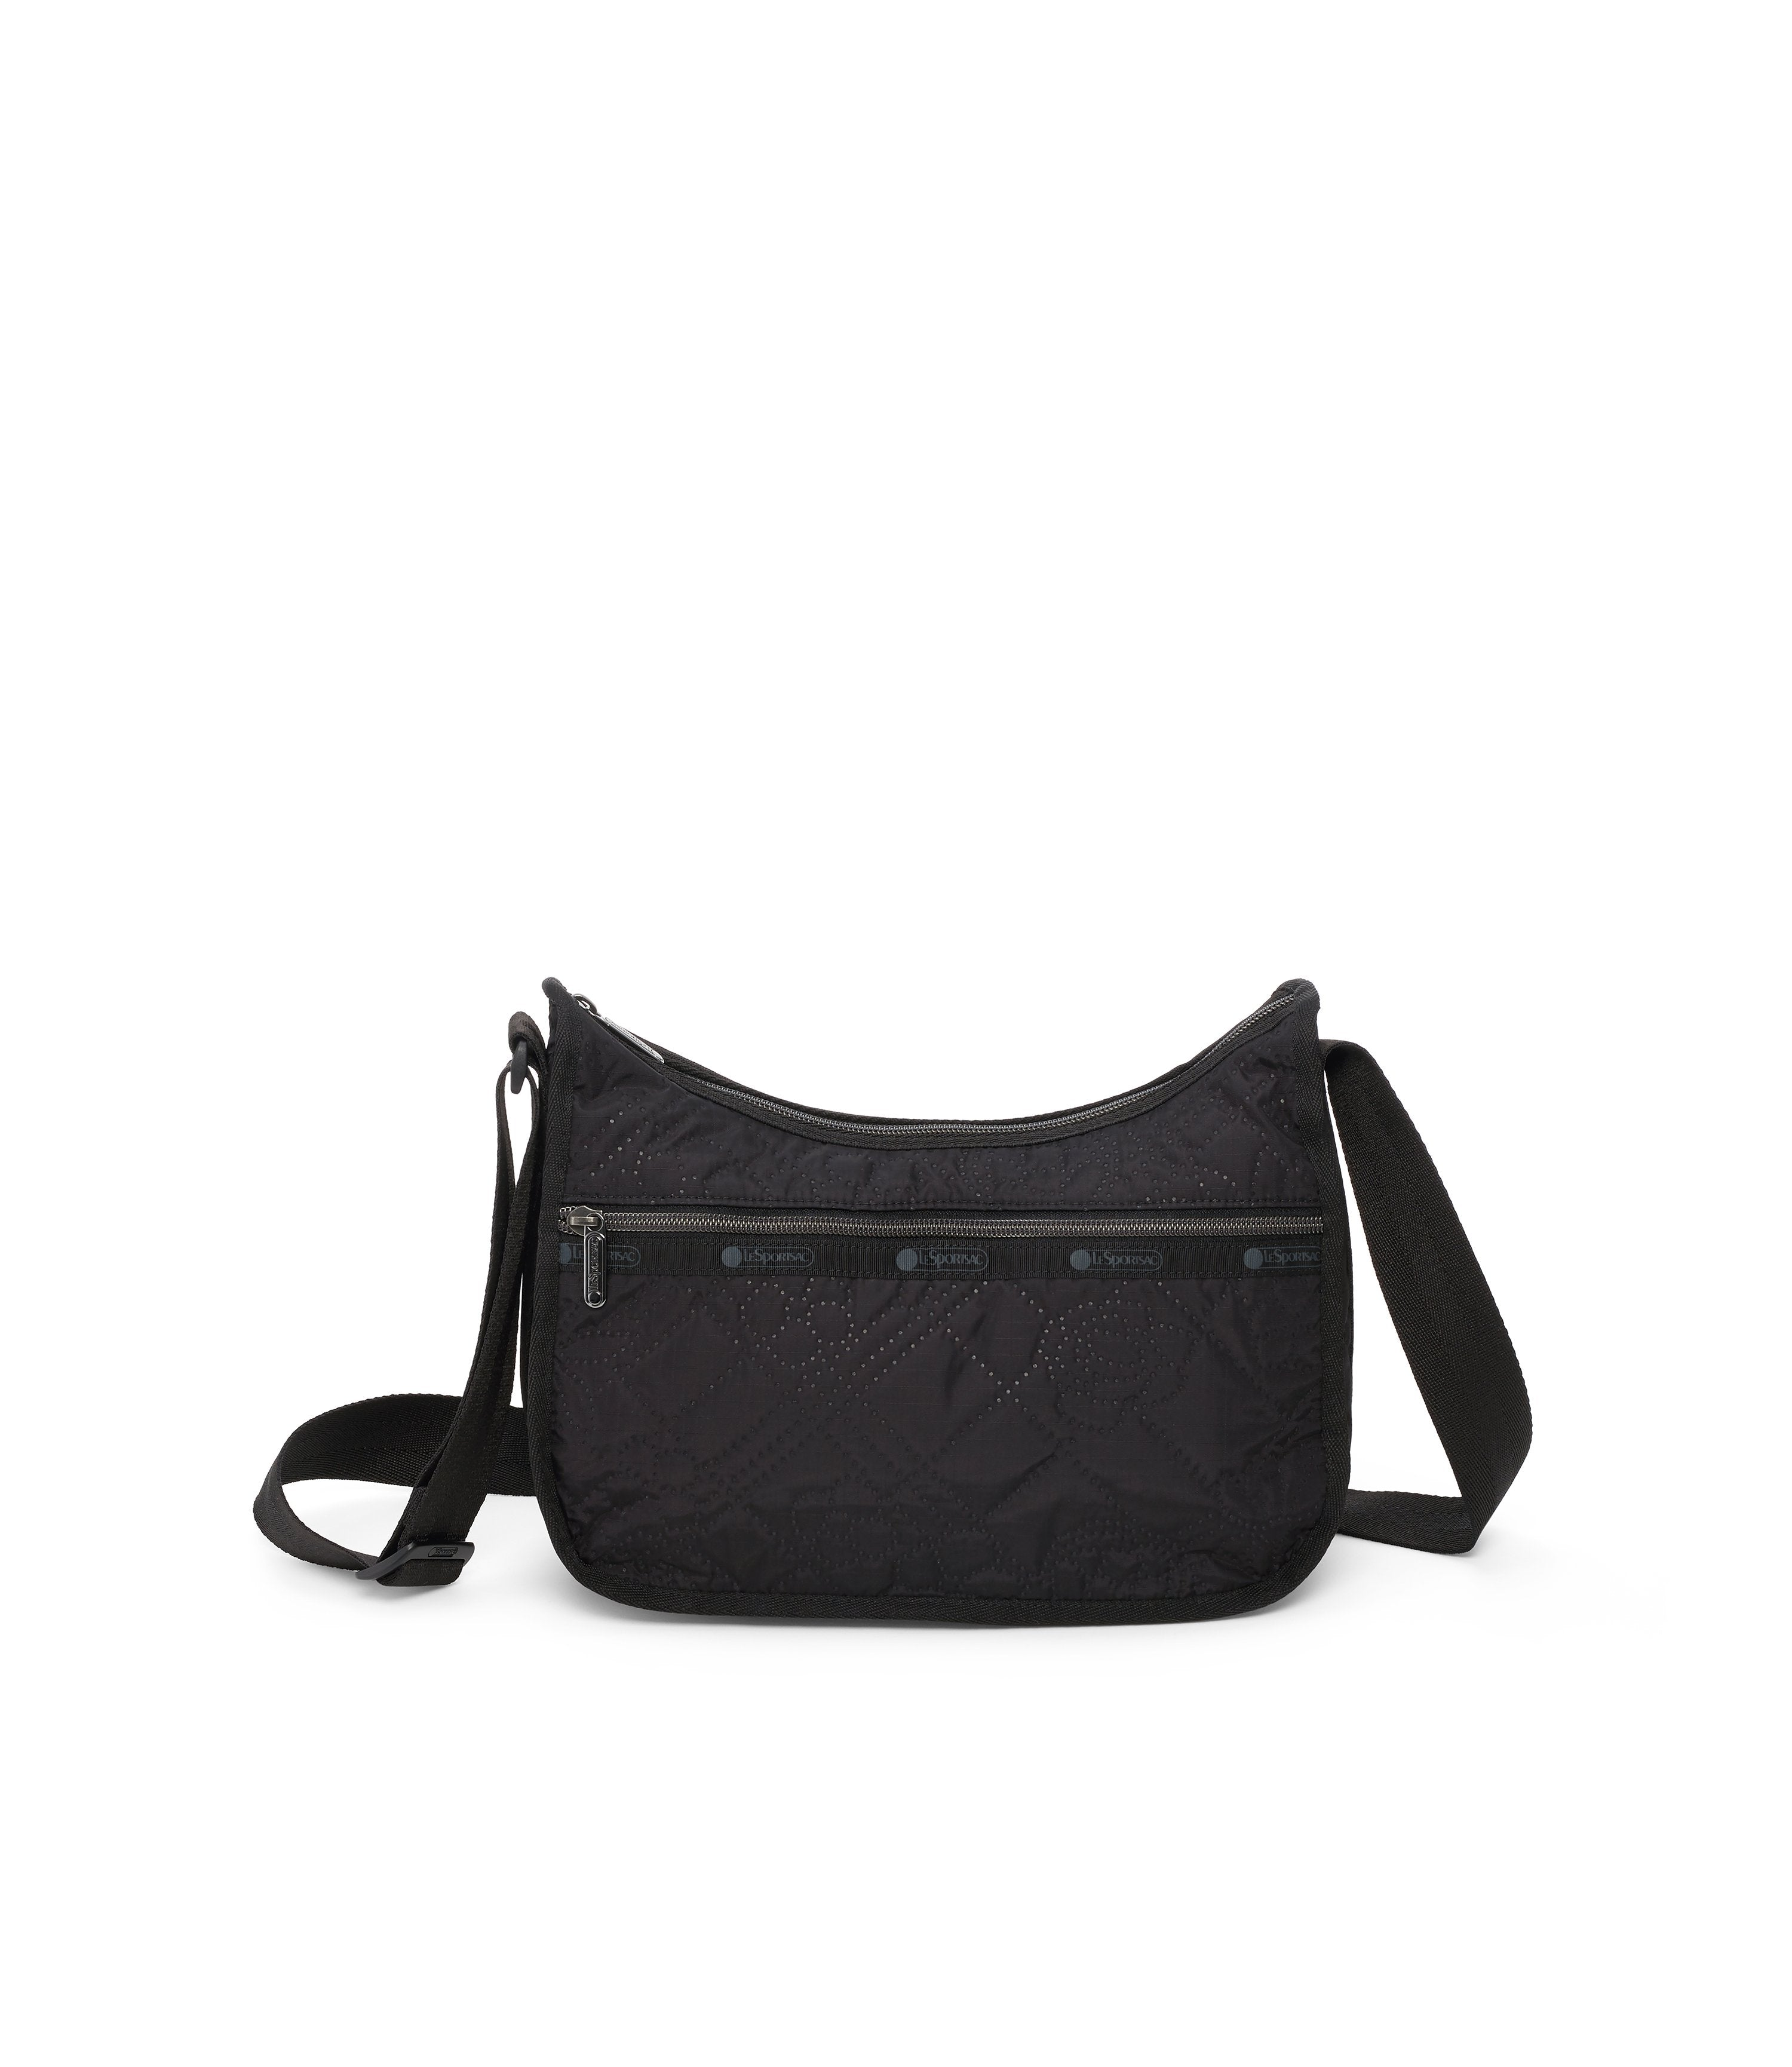 Classic Hobo, Nylon Handbags and Classic Purses, LeSportsac, Fleur De Check Black Debossed